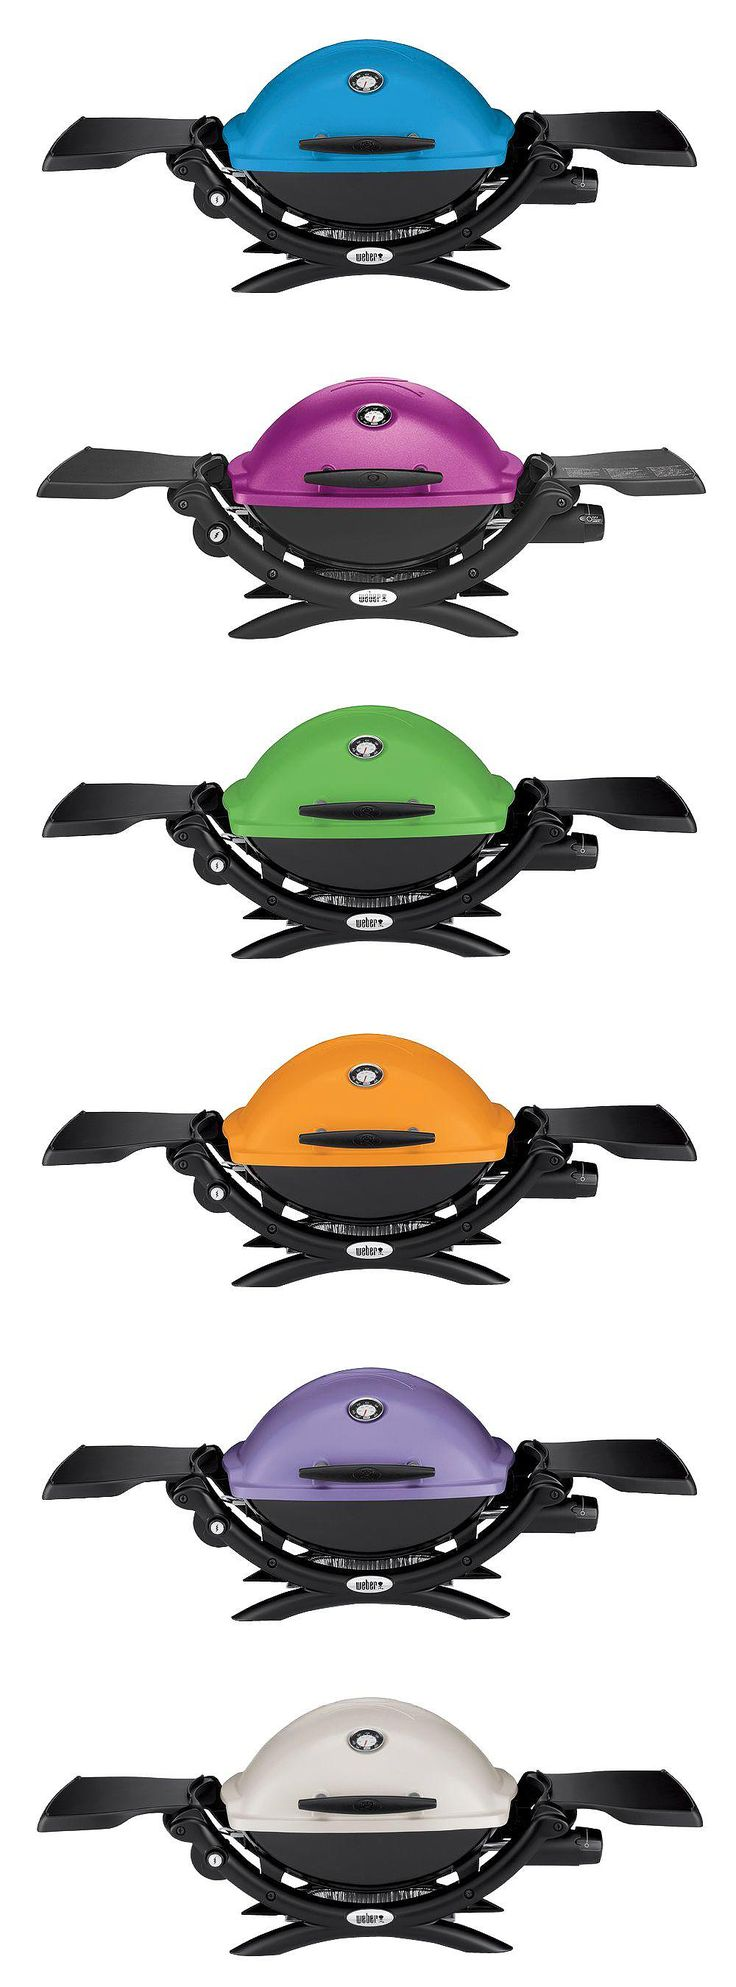 Make grilling more colorful with this portable Weber gas grill. It travels easily to the tailgating party or picnic. It collapses for easy storage when you get home. And the colors! Available in blue, fuschia (!), green, orange, purple and white. (And, yes, black, too.) You'll love this little guy.